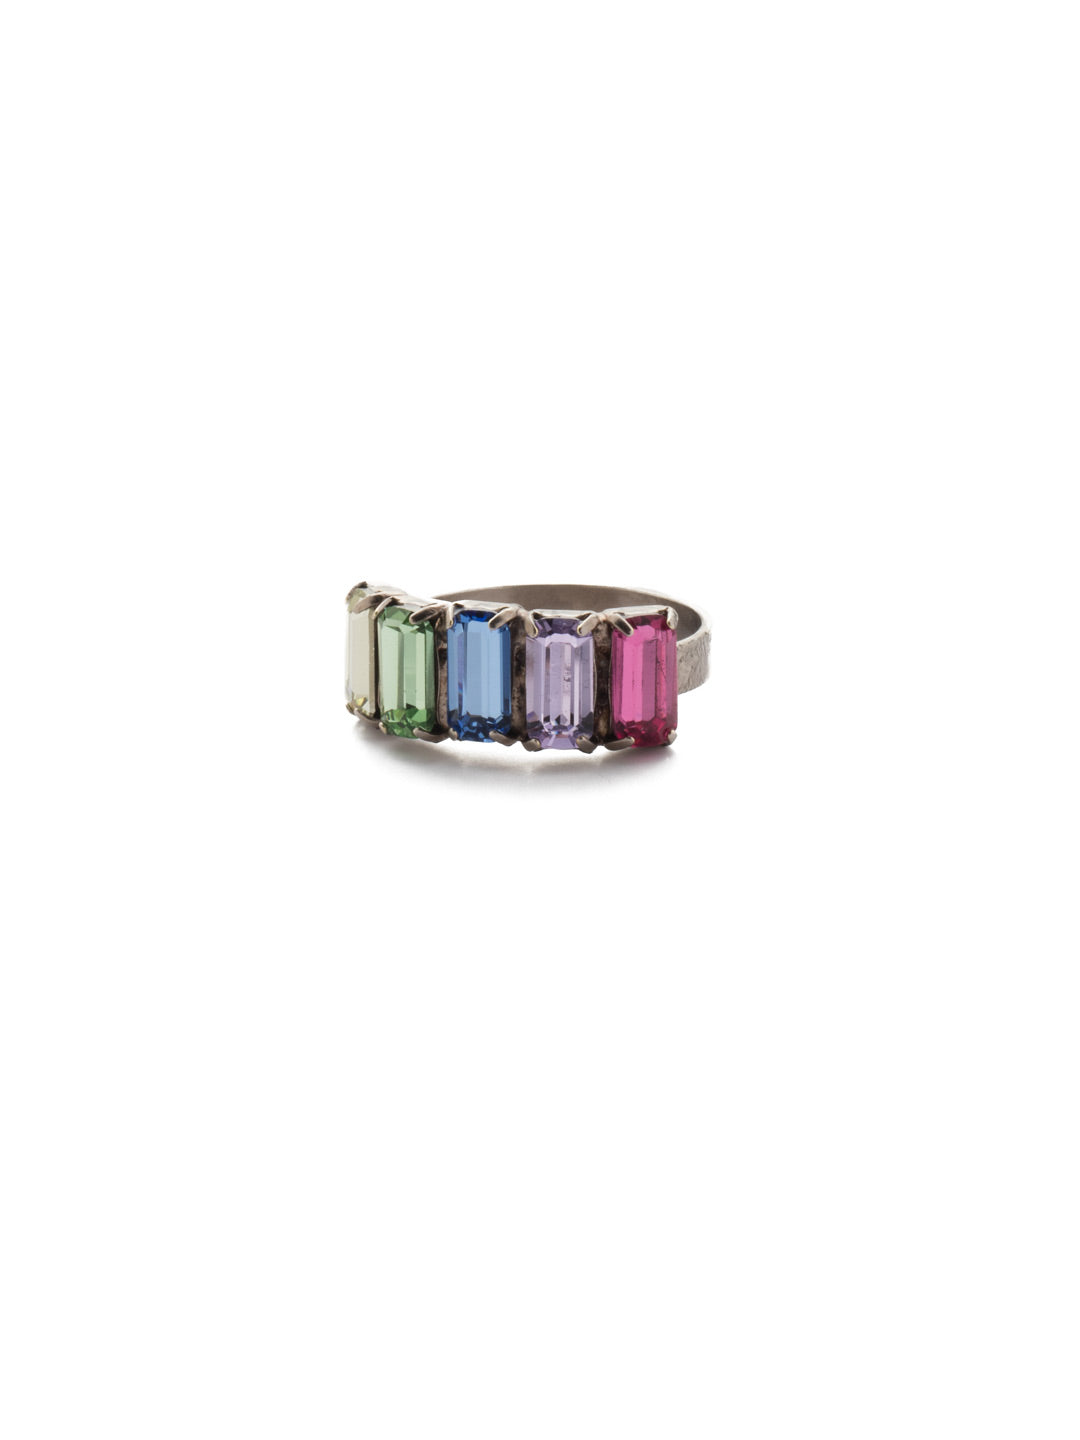 Arden Band Ring - REF29ASPRI